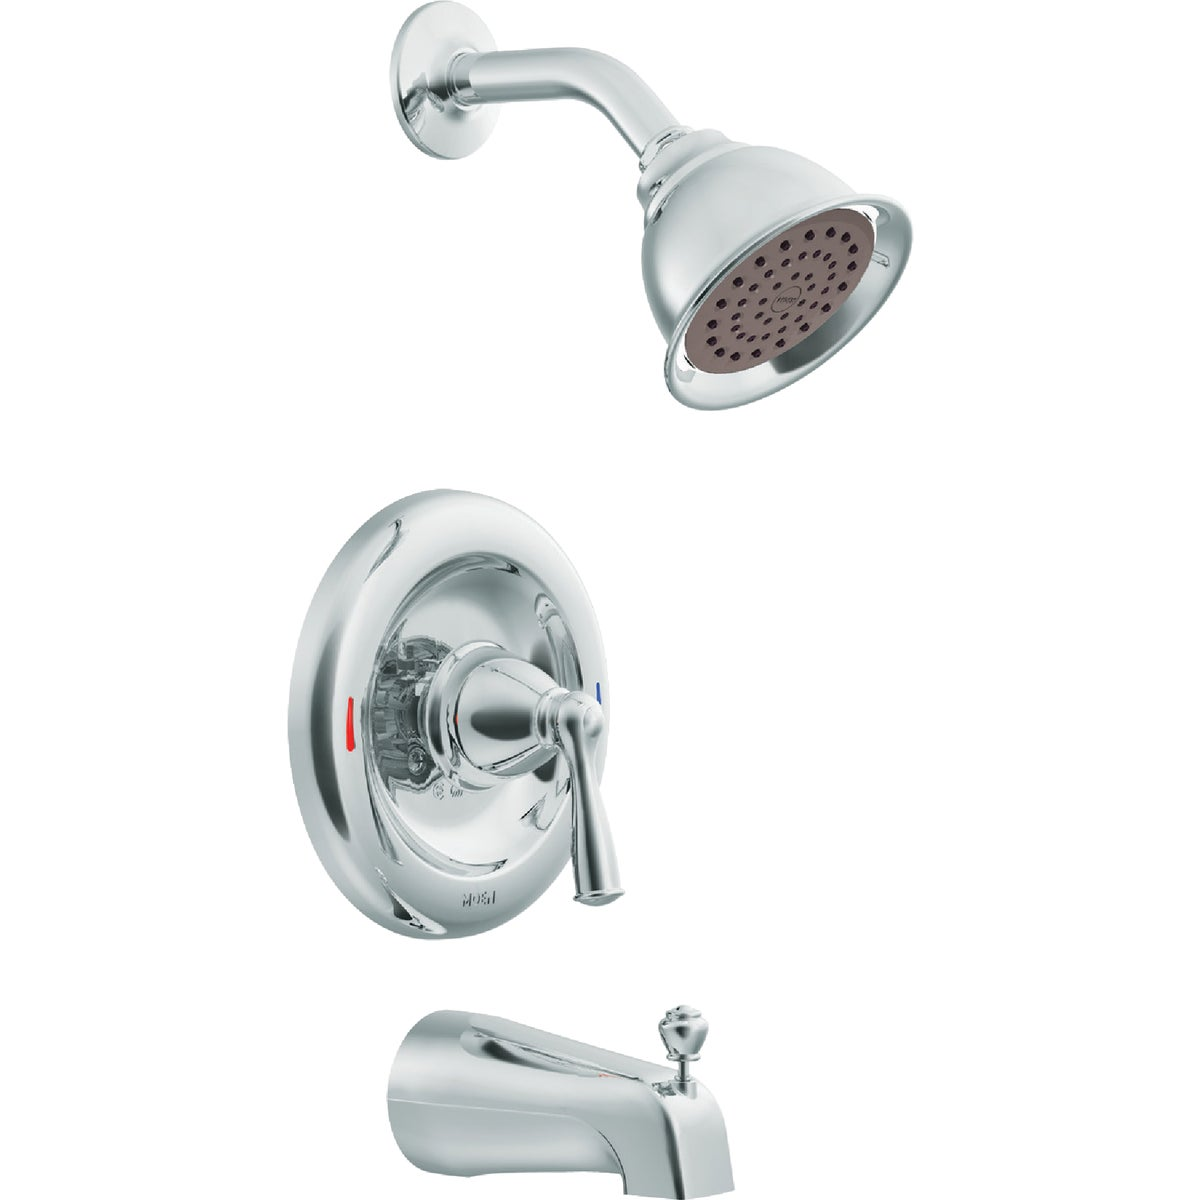 1H CHR TUB/SHOWER FAUCET - 82910EP by Moen Inc